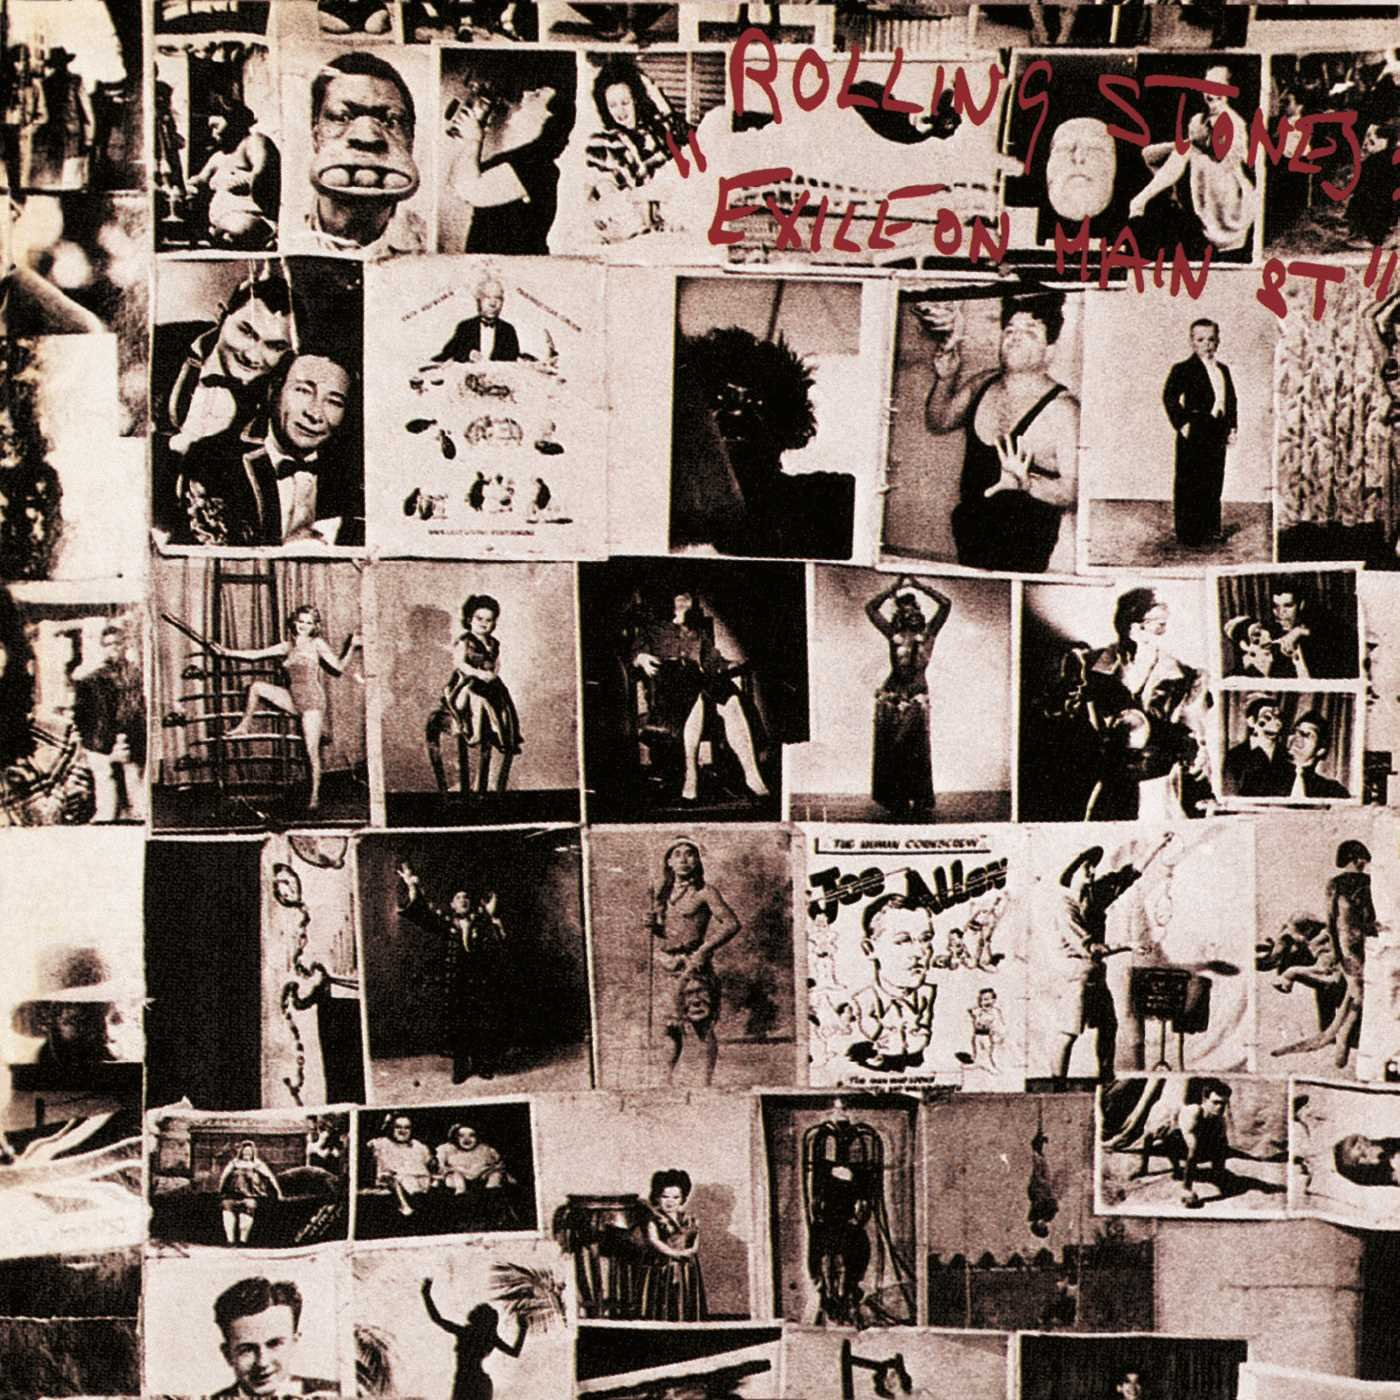 THE ROLLING STONE – Exile On Main St (Double LP, 180g)